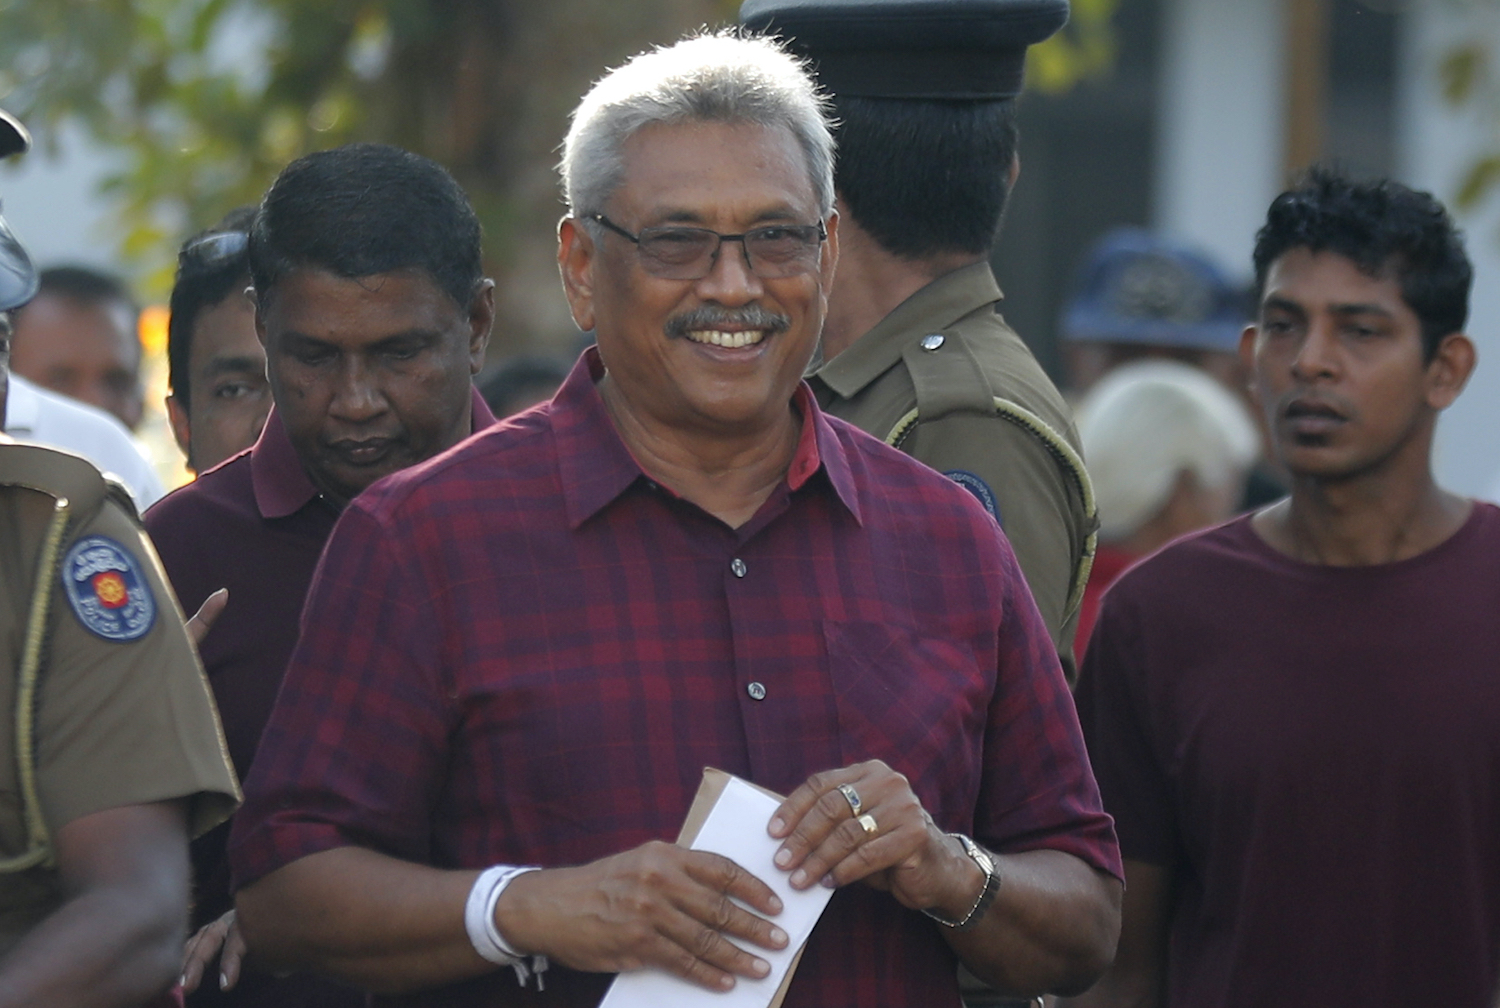 Presidential candidate Gotabaya Rajapaksa leaves a polling station after casting his vote in Embuldeniya, on the outskirts of Colombo, on Saturday. A former defence secretary in an administration headed by his brother, Mr Rajapaksa has been leading in opinion polls ahead of the vote. (AP Photo)